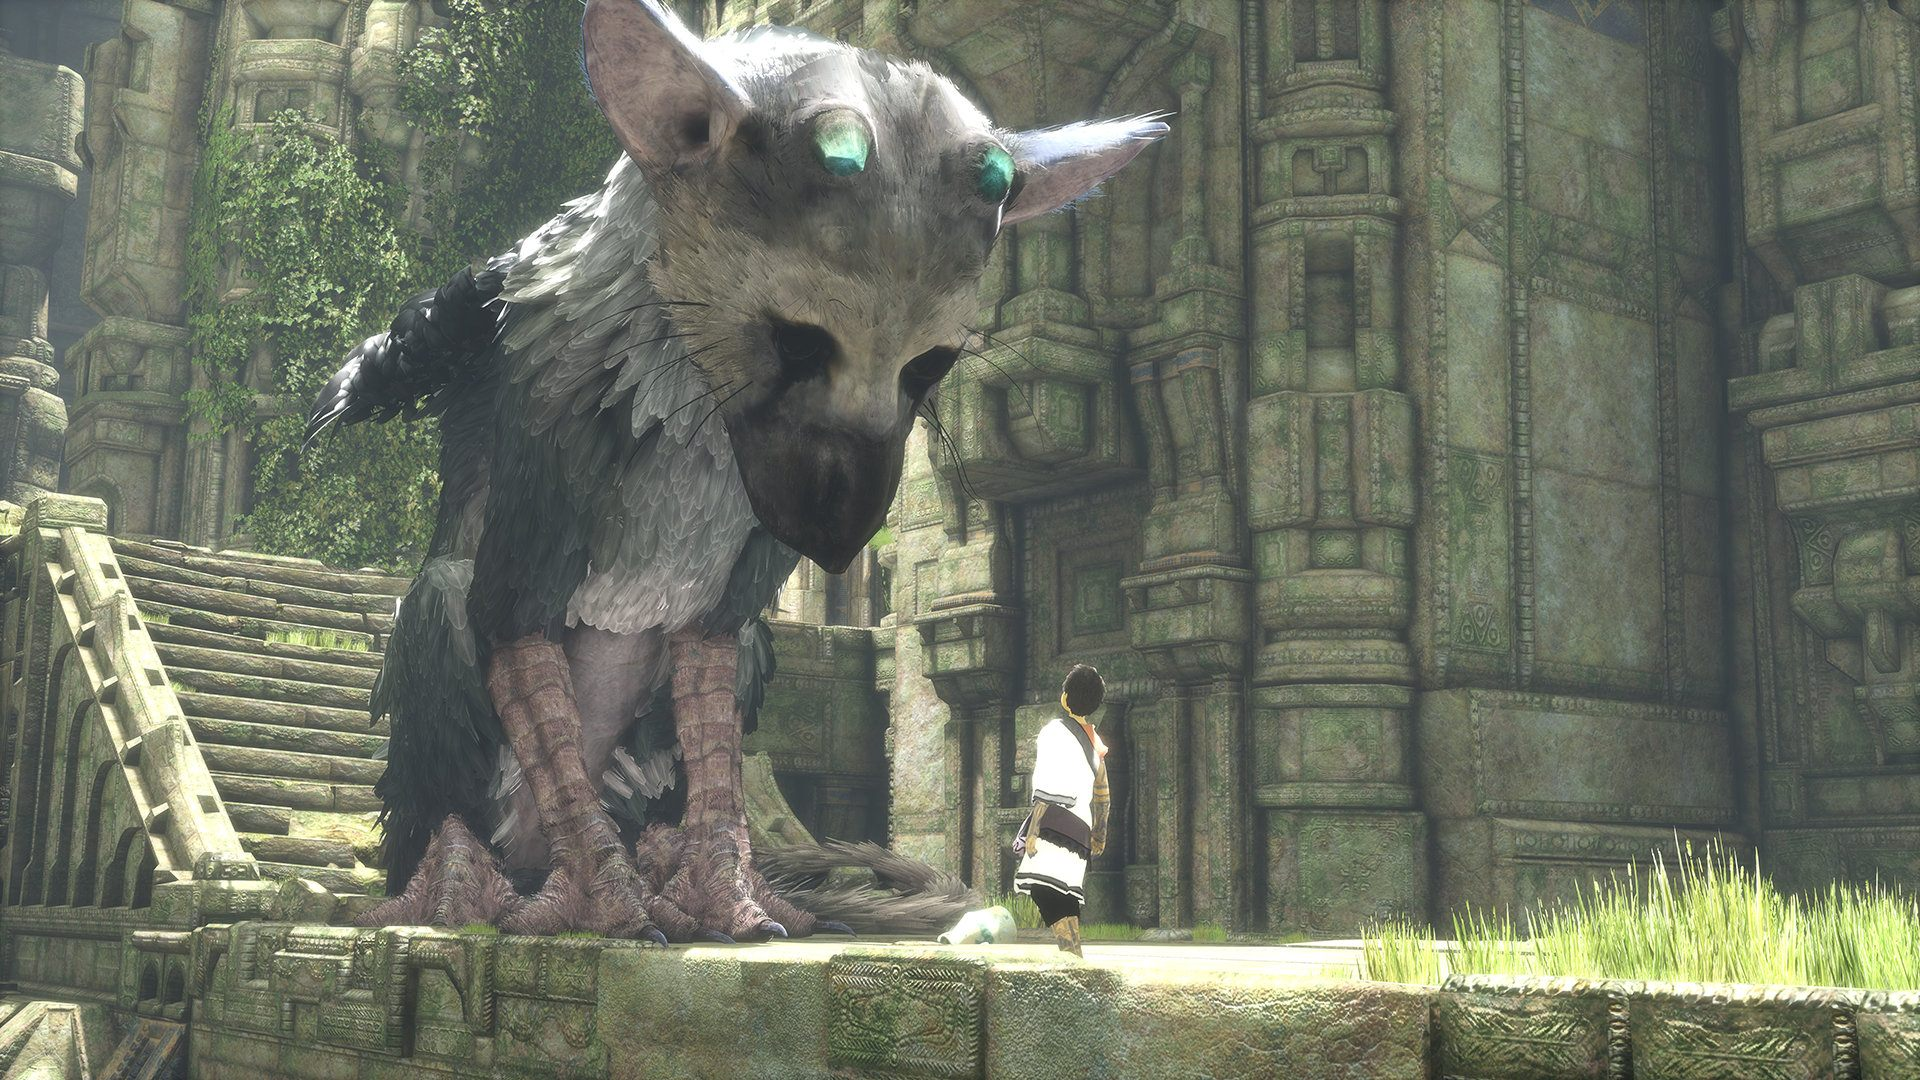 A boy and his bird dog in The Last Guardian.